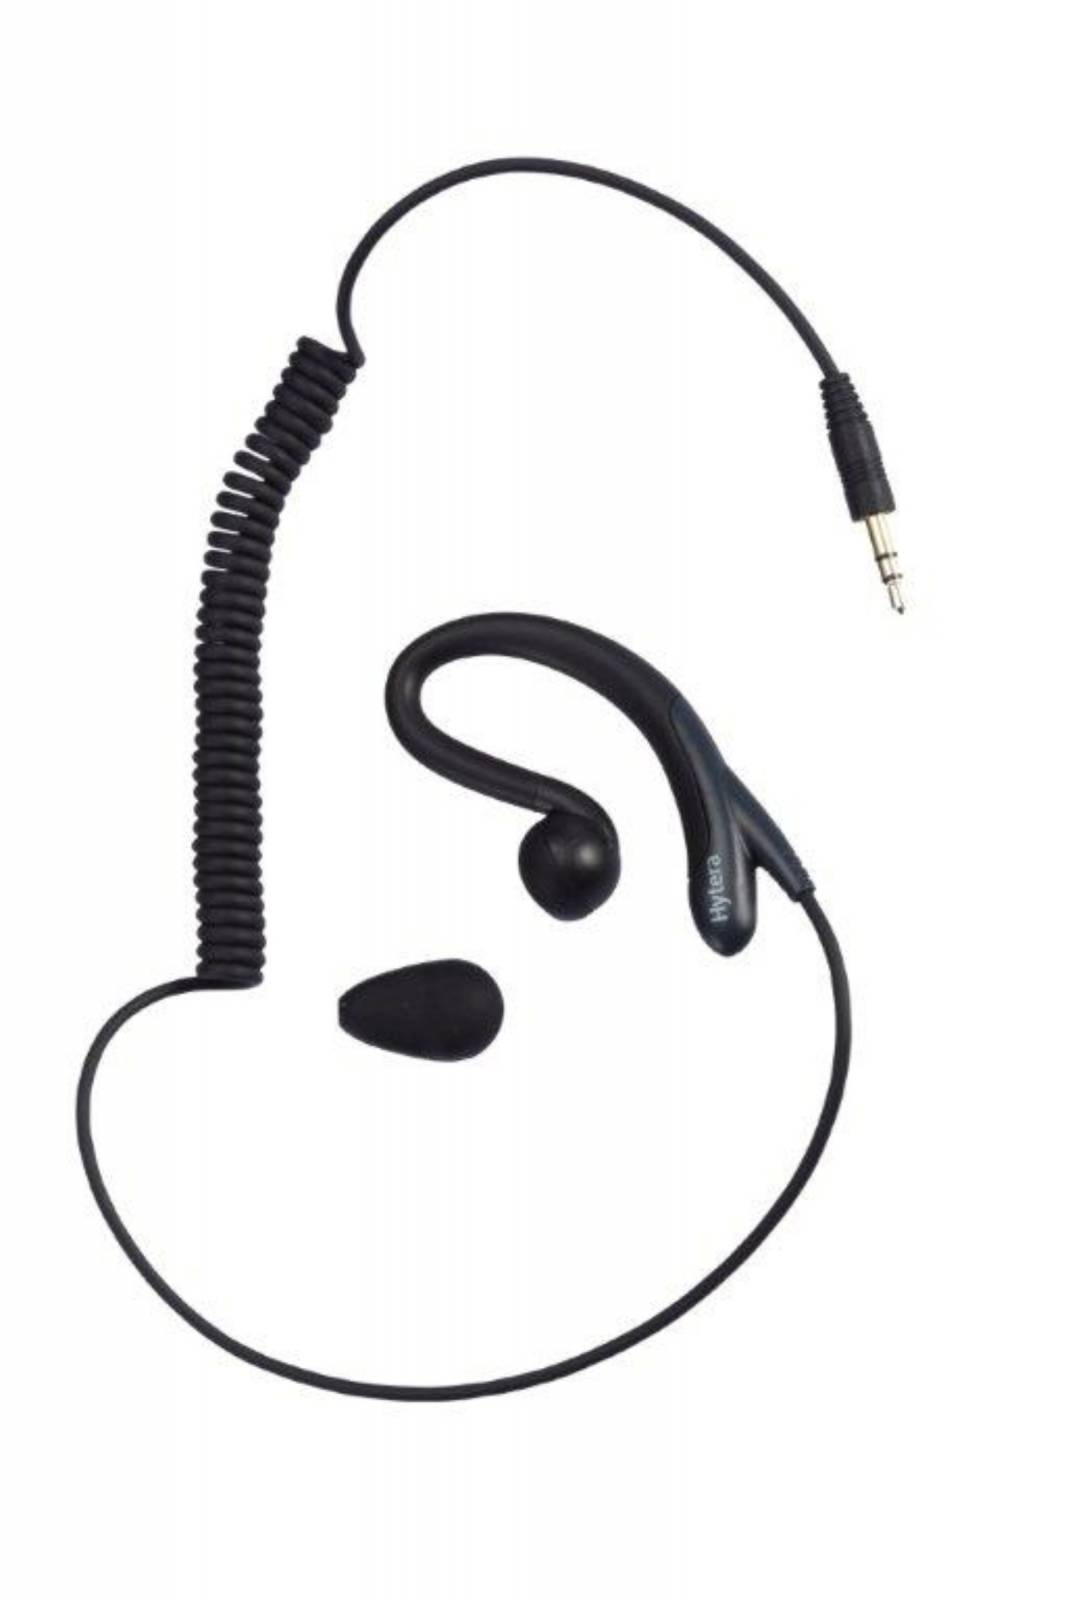 HYTERA RECEIVE ONLY C STYLE EARLOOP